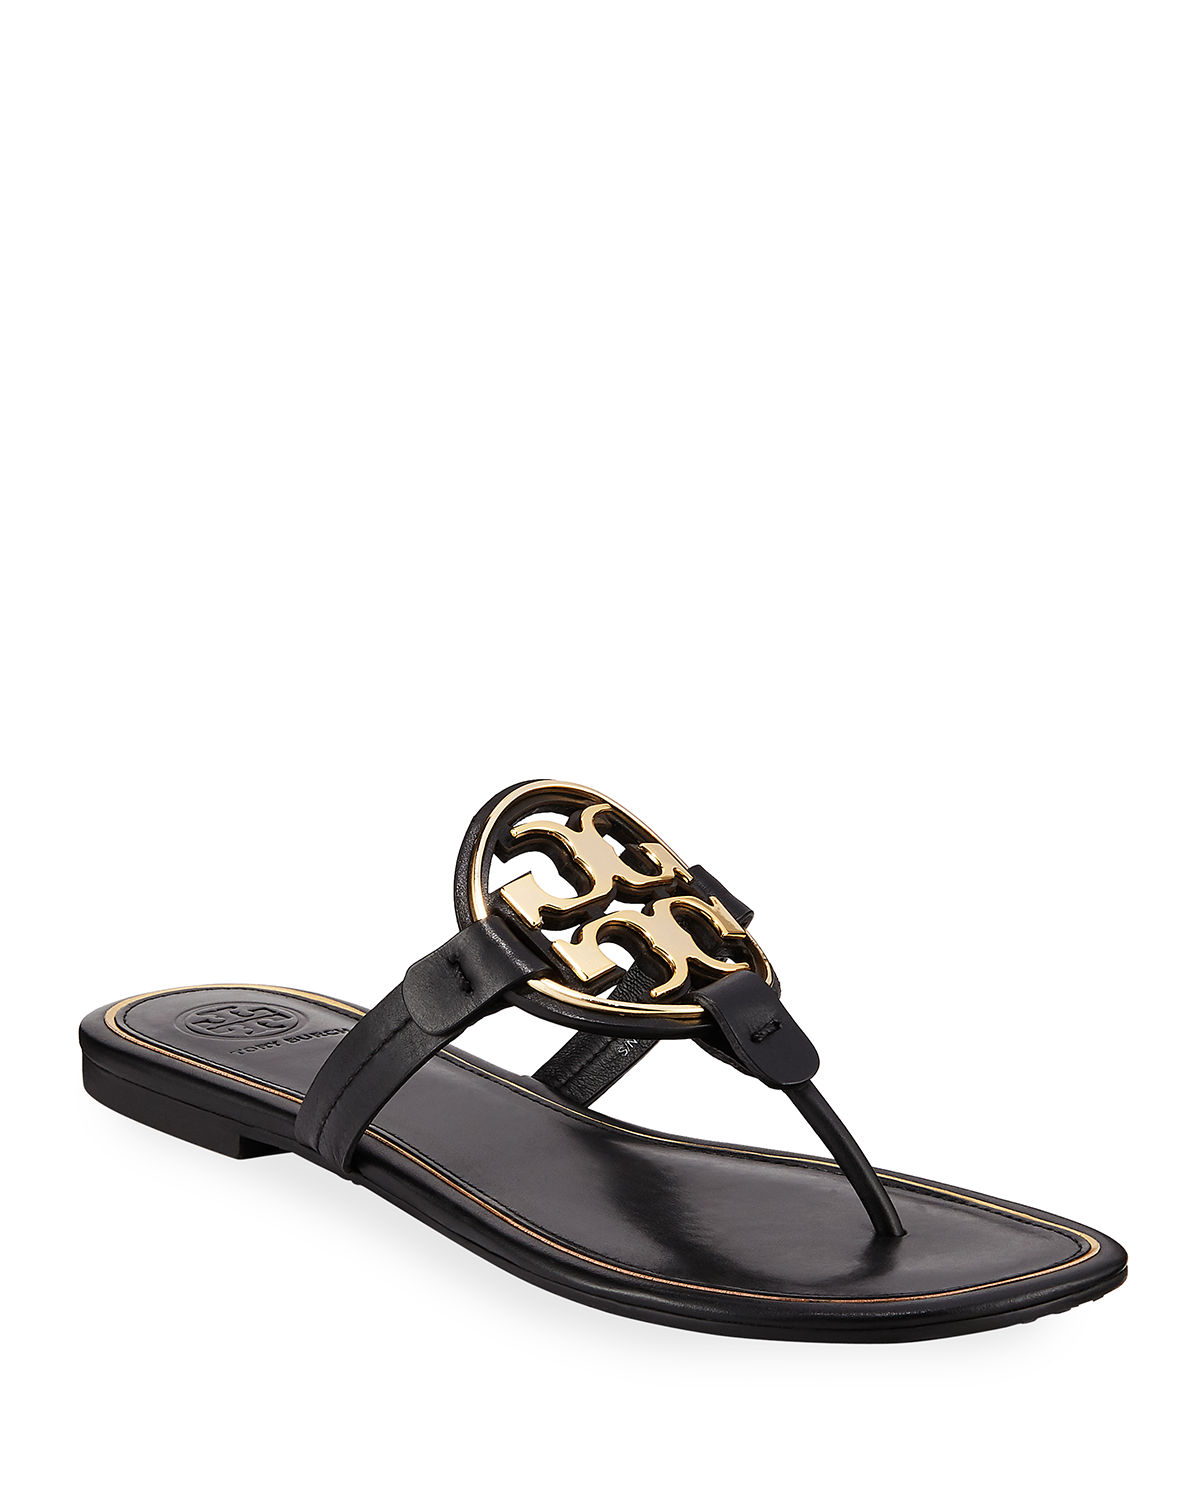 298cfbc60 Tory Burch Miller Flat Metal Logo Slide Sandals